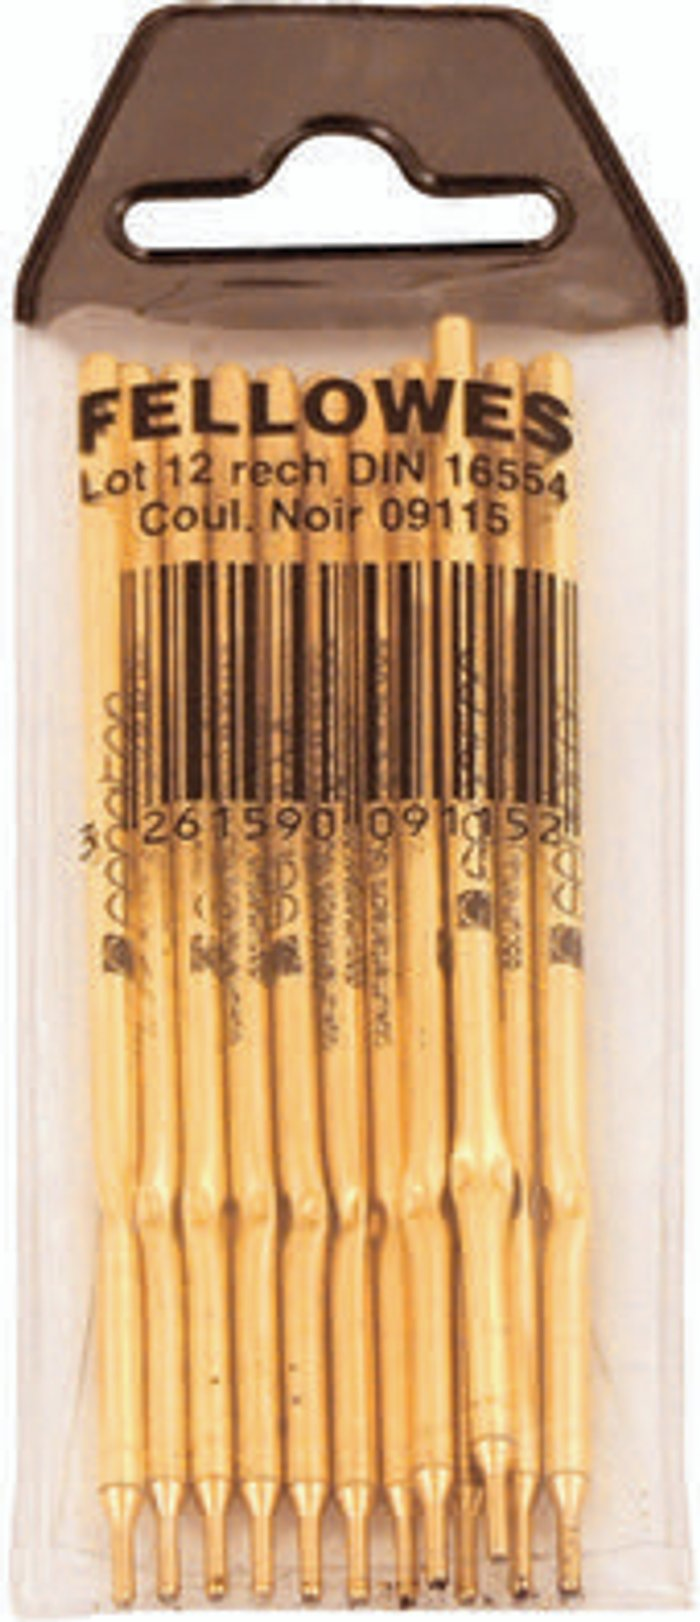 Fellowes Fellowes Ballpoint Desk Pen and Chain Refill (Pack of 12) 0911501